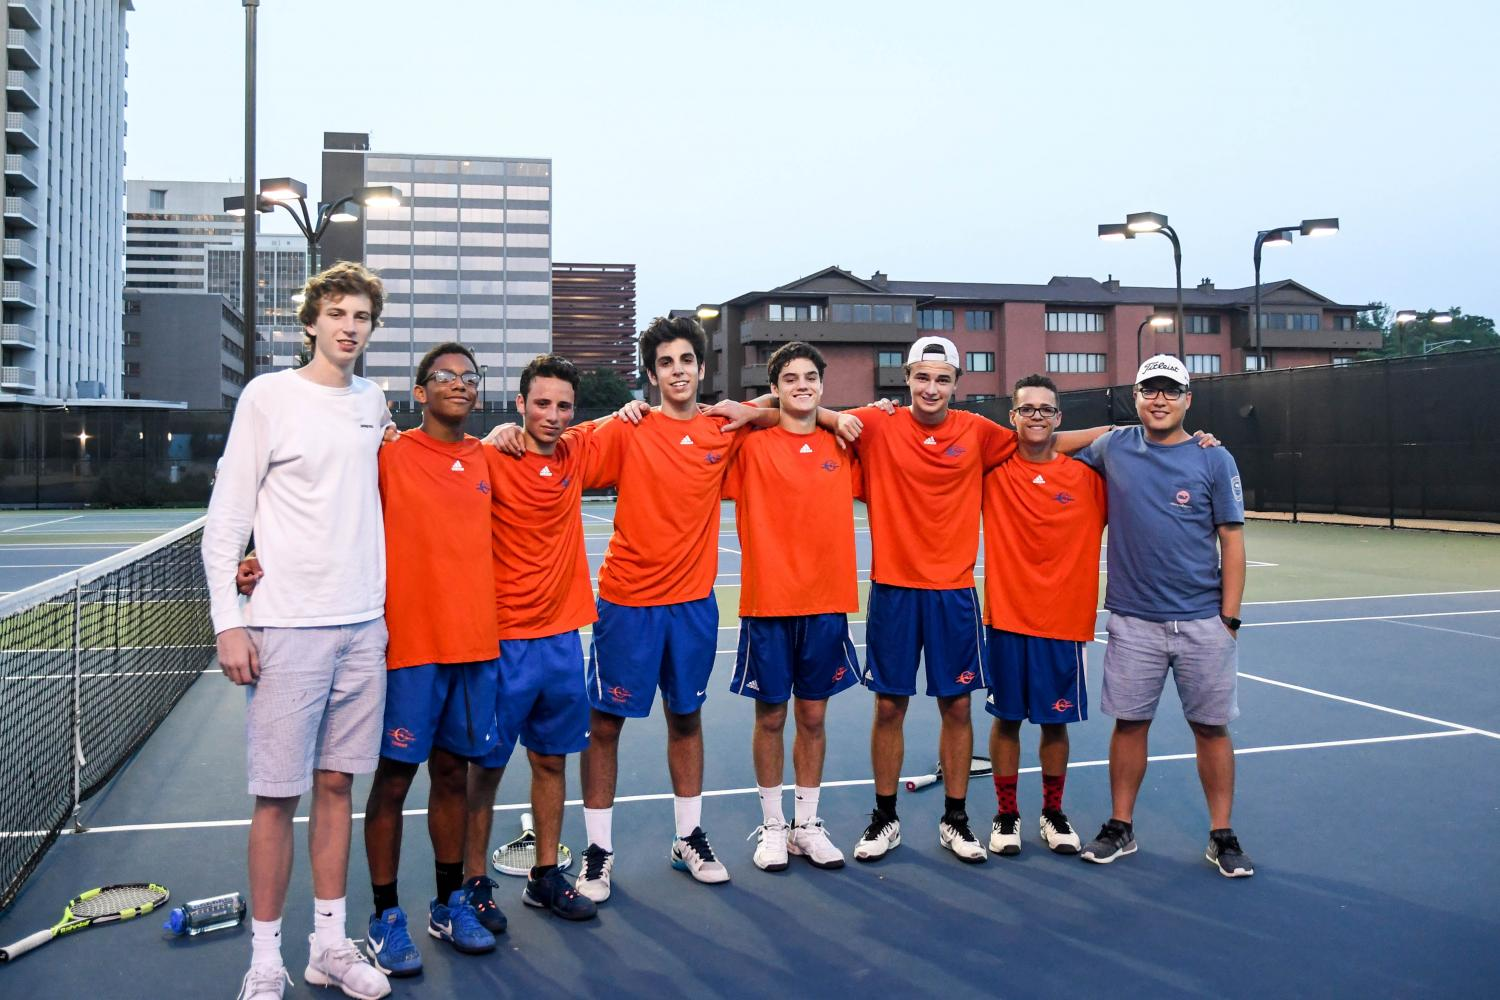 Boys tennis team at Shaw Park after winning Sectionals